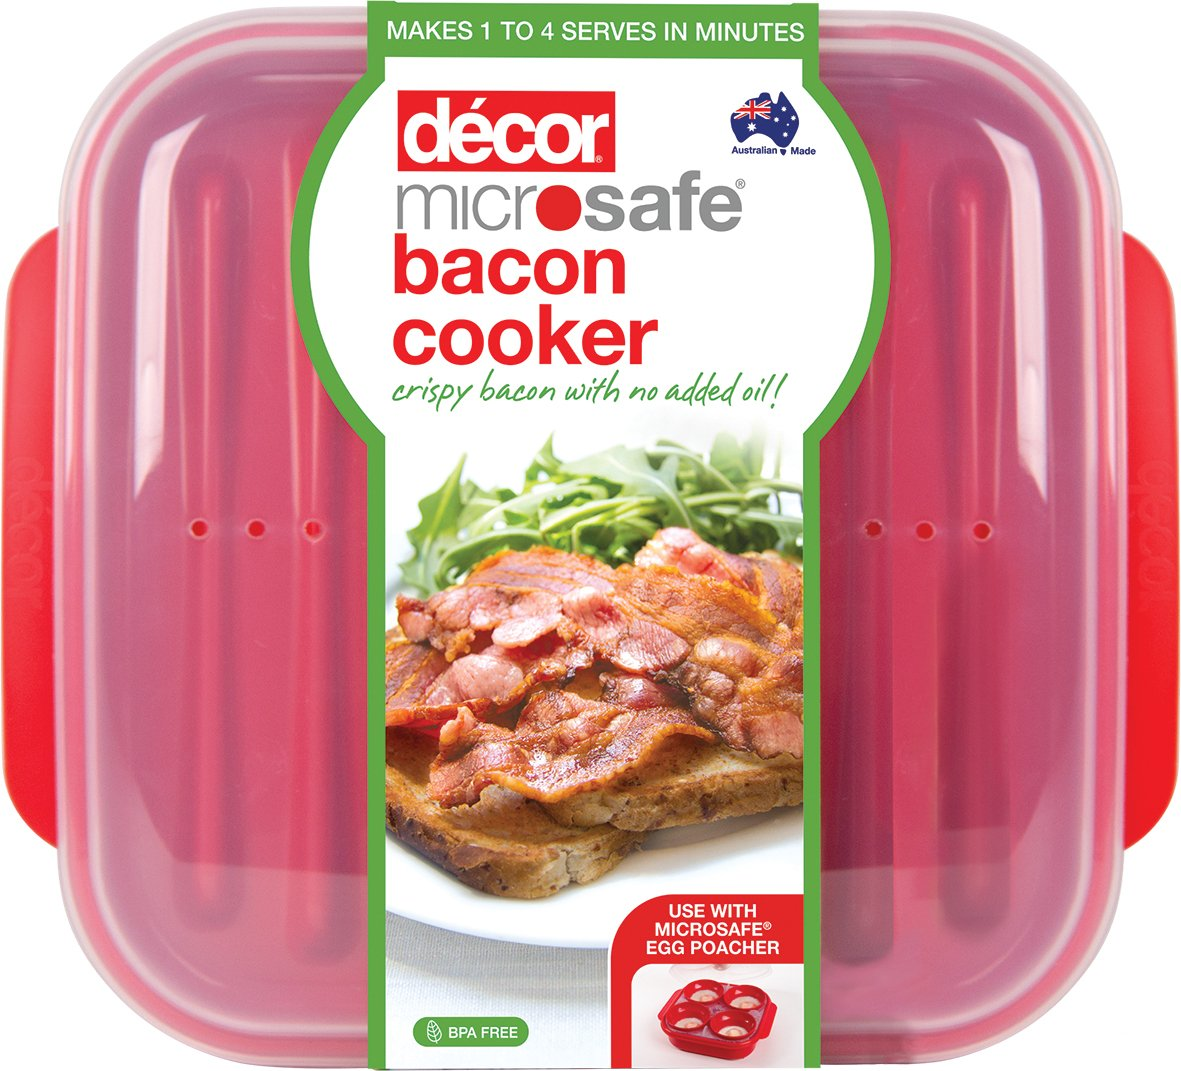 Decor ® Microwave Bacon Cooker Plate - For Healthier Crispy Bacon – Cook Bacon Within Minutes 225600-004